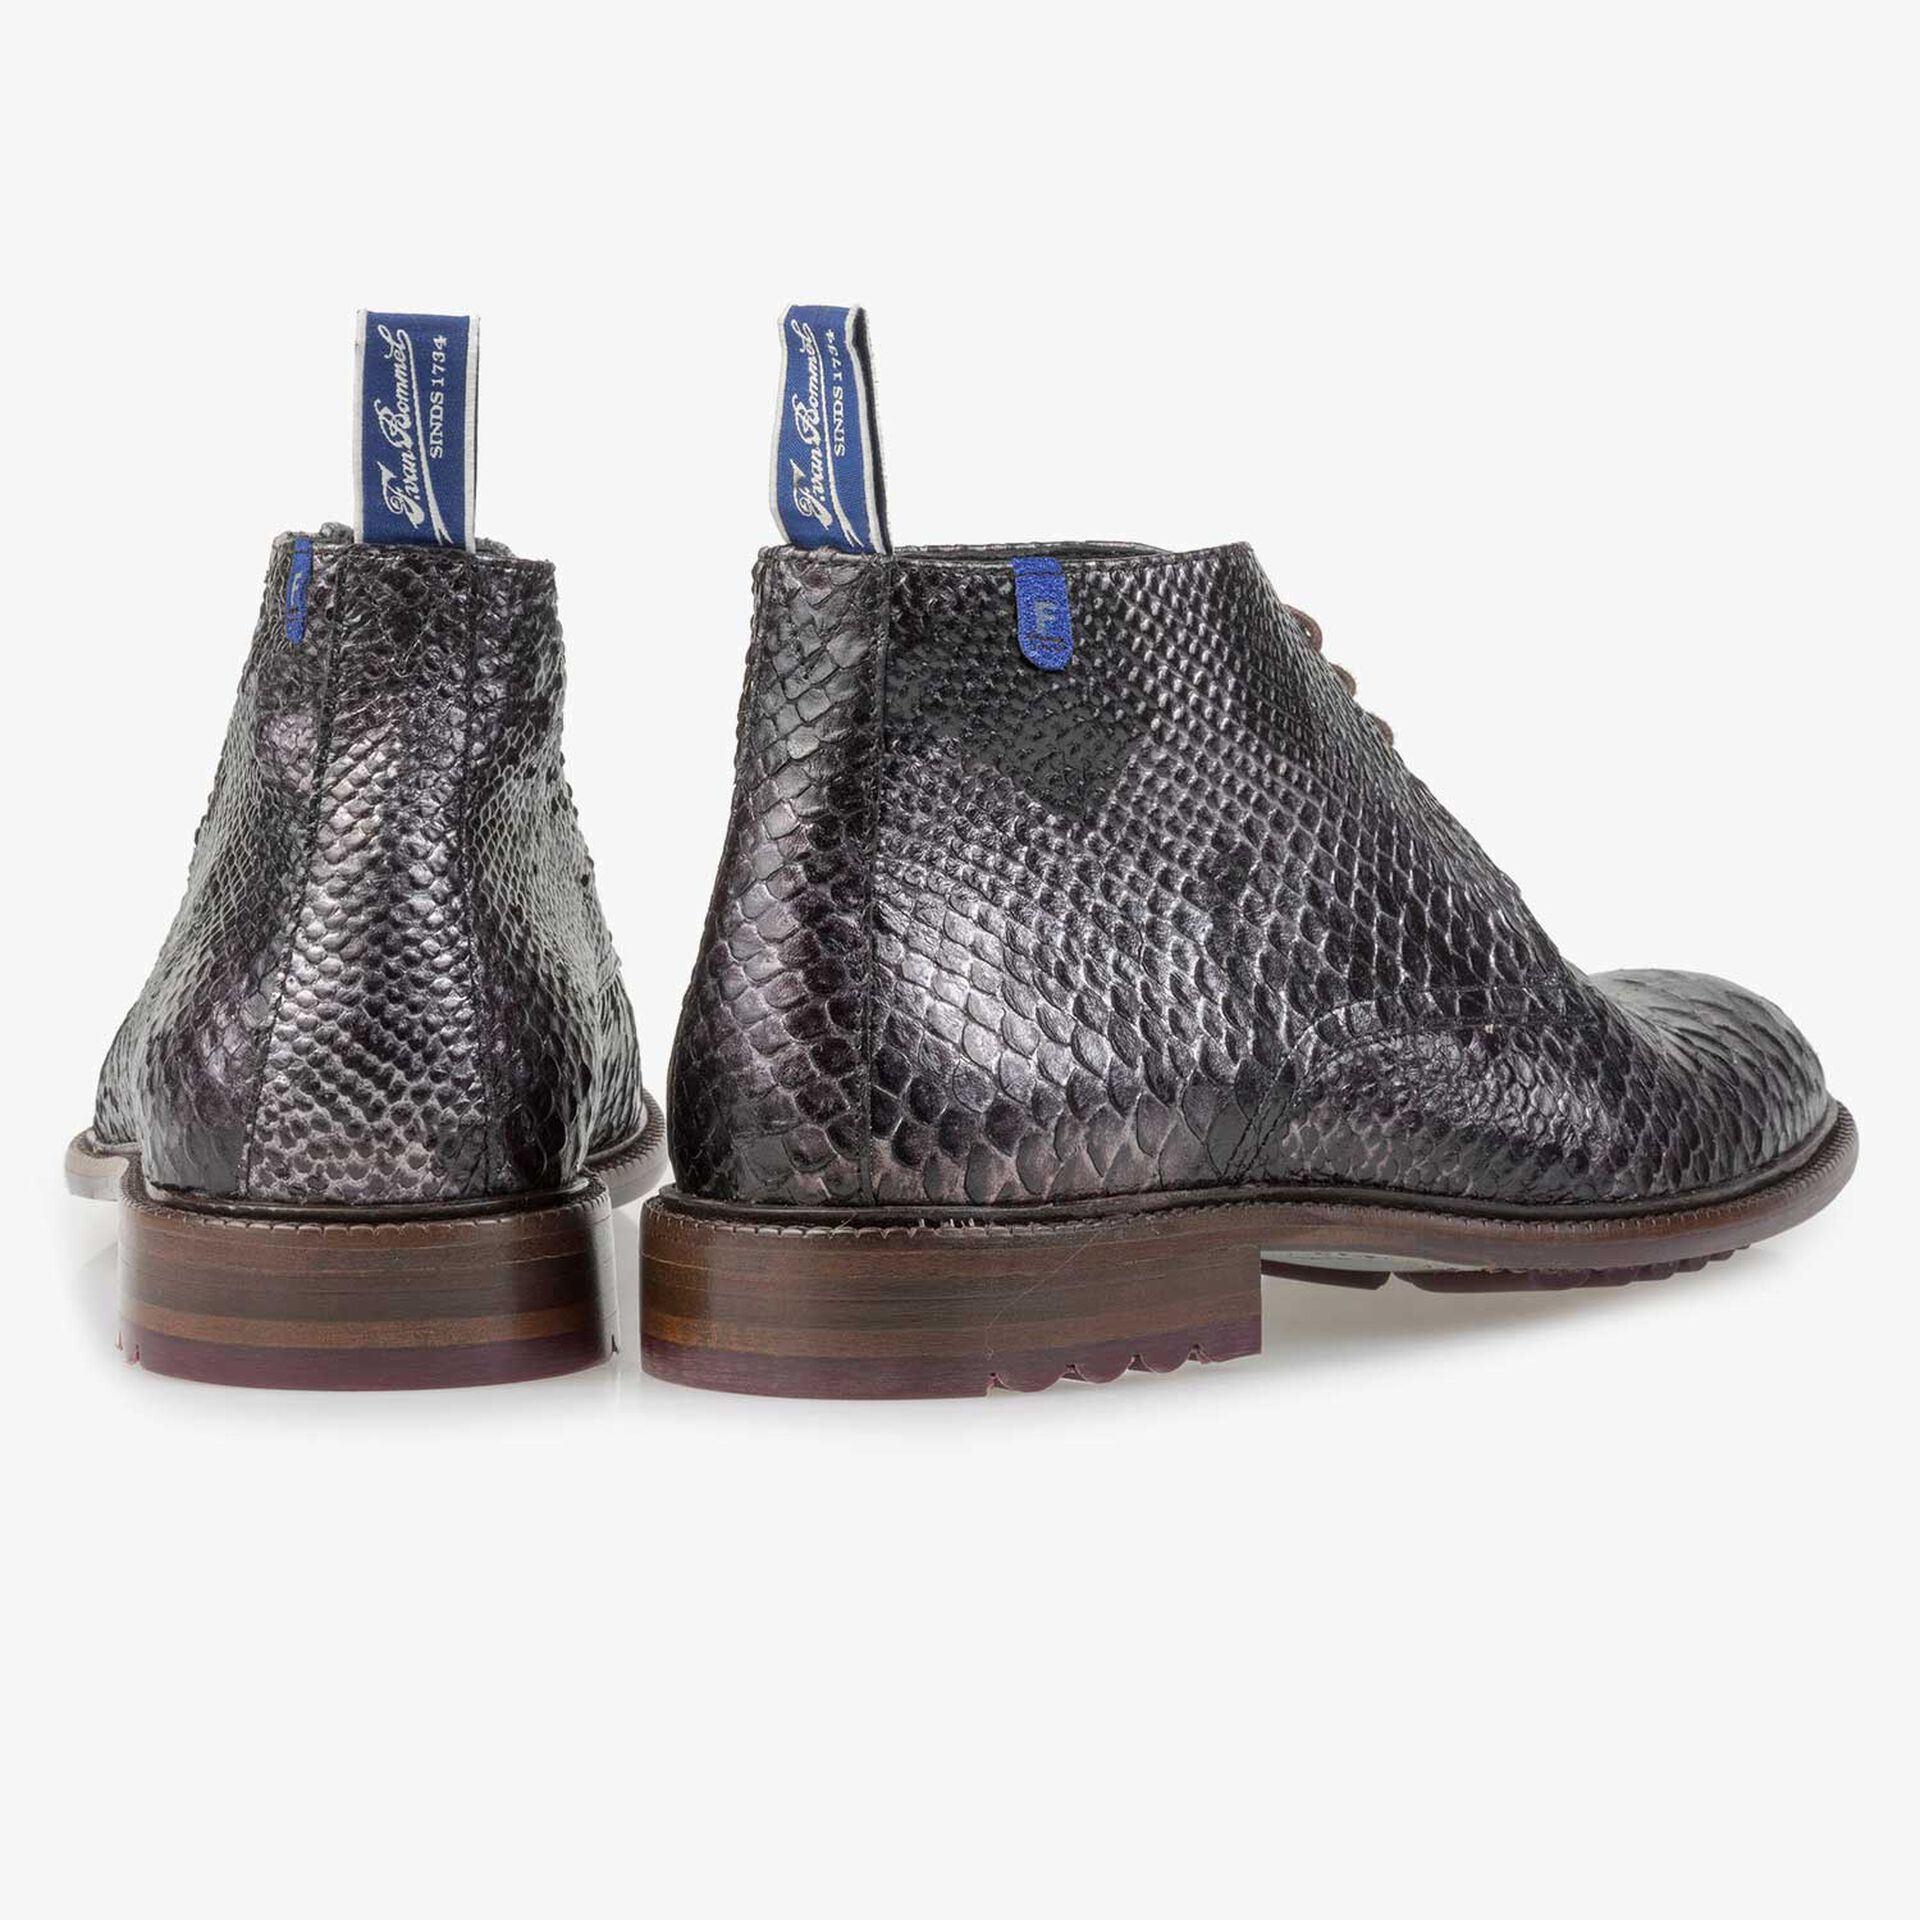 Grey calf leather snake print lace boot